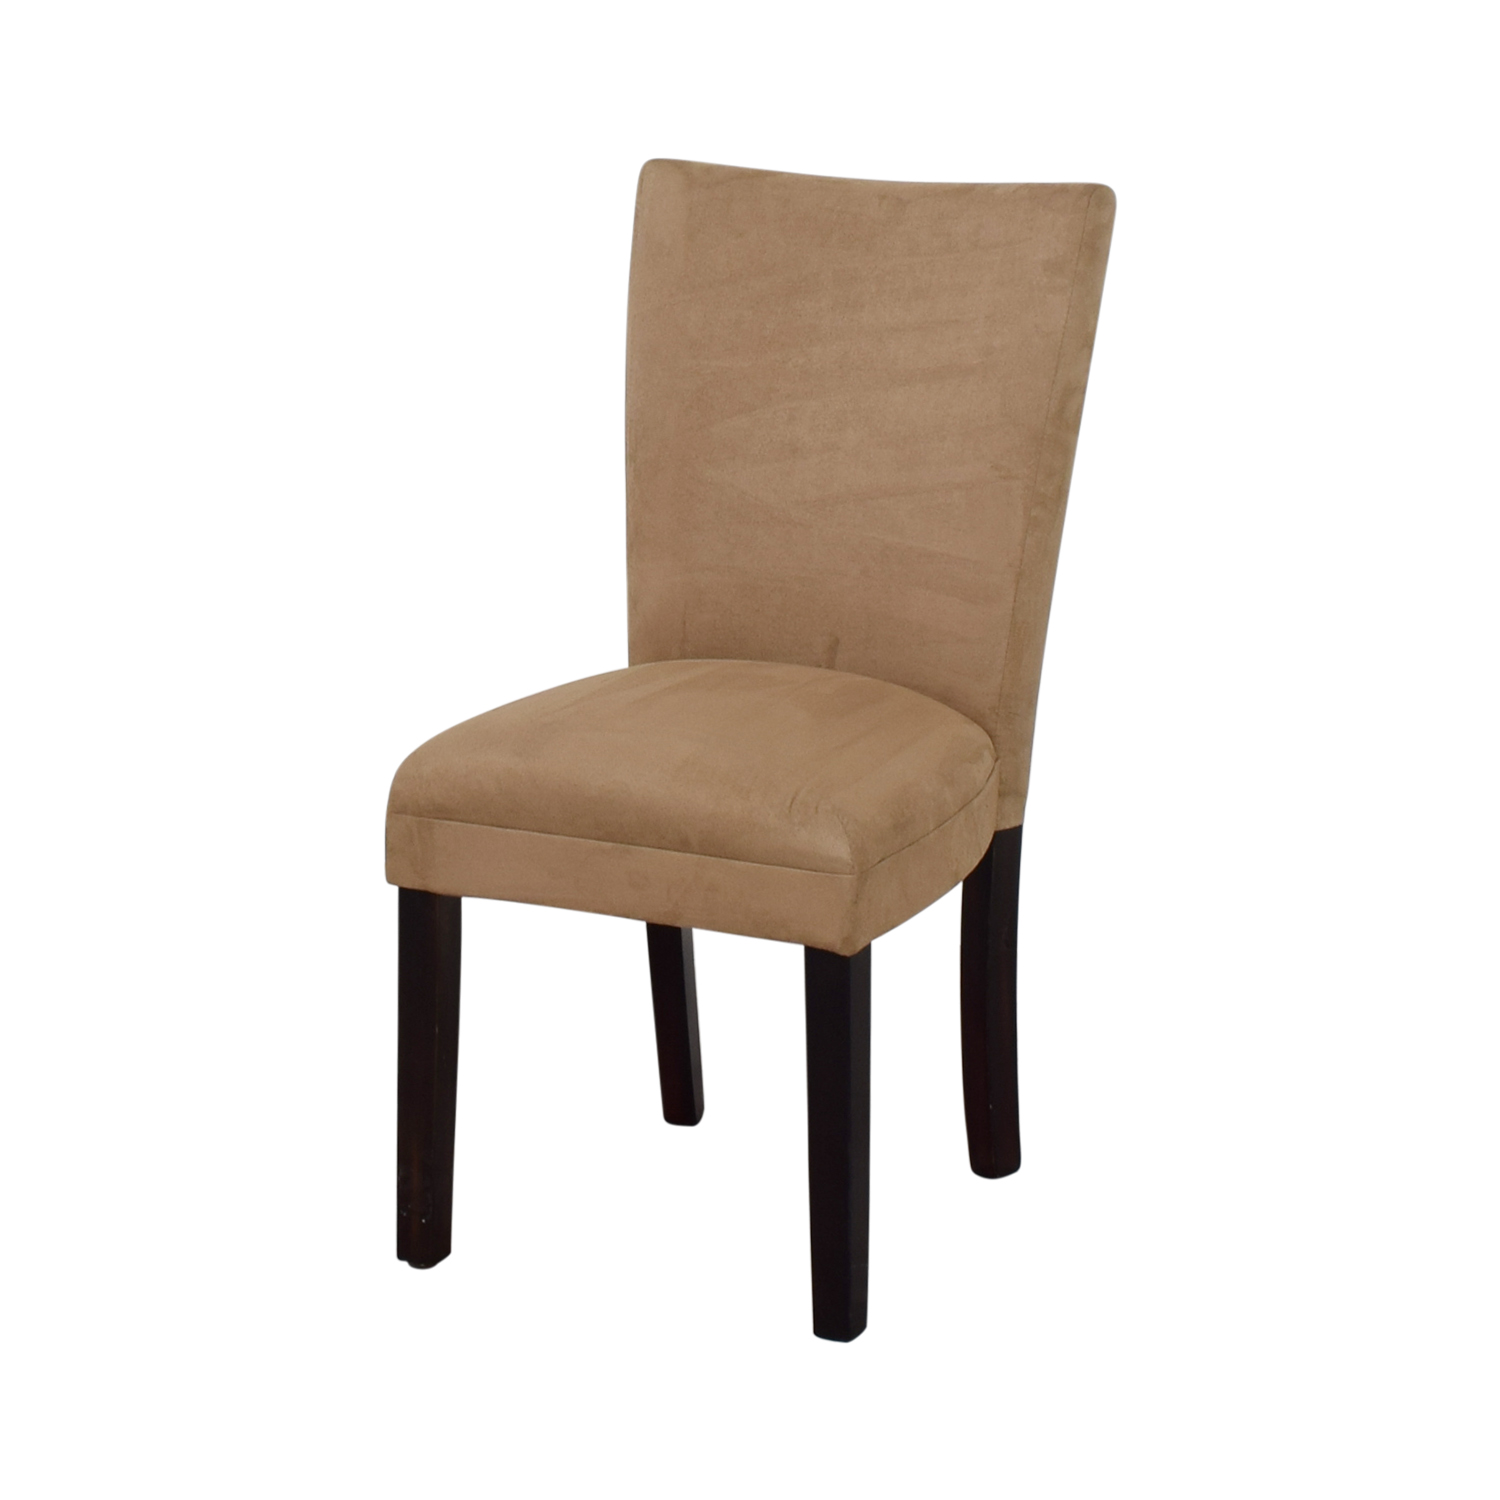 ... Coaster Furniture Parsons Taupe Microfiber Fabric Chair Second Hand ...